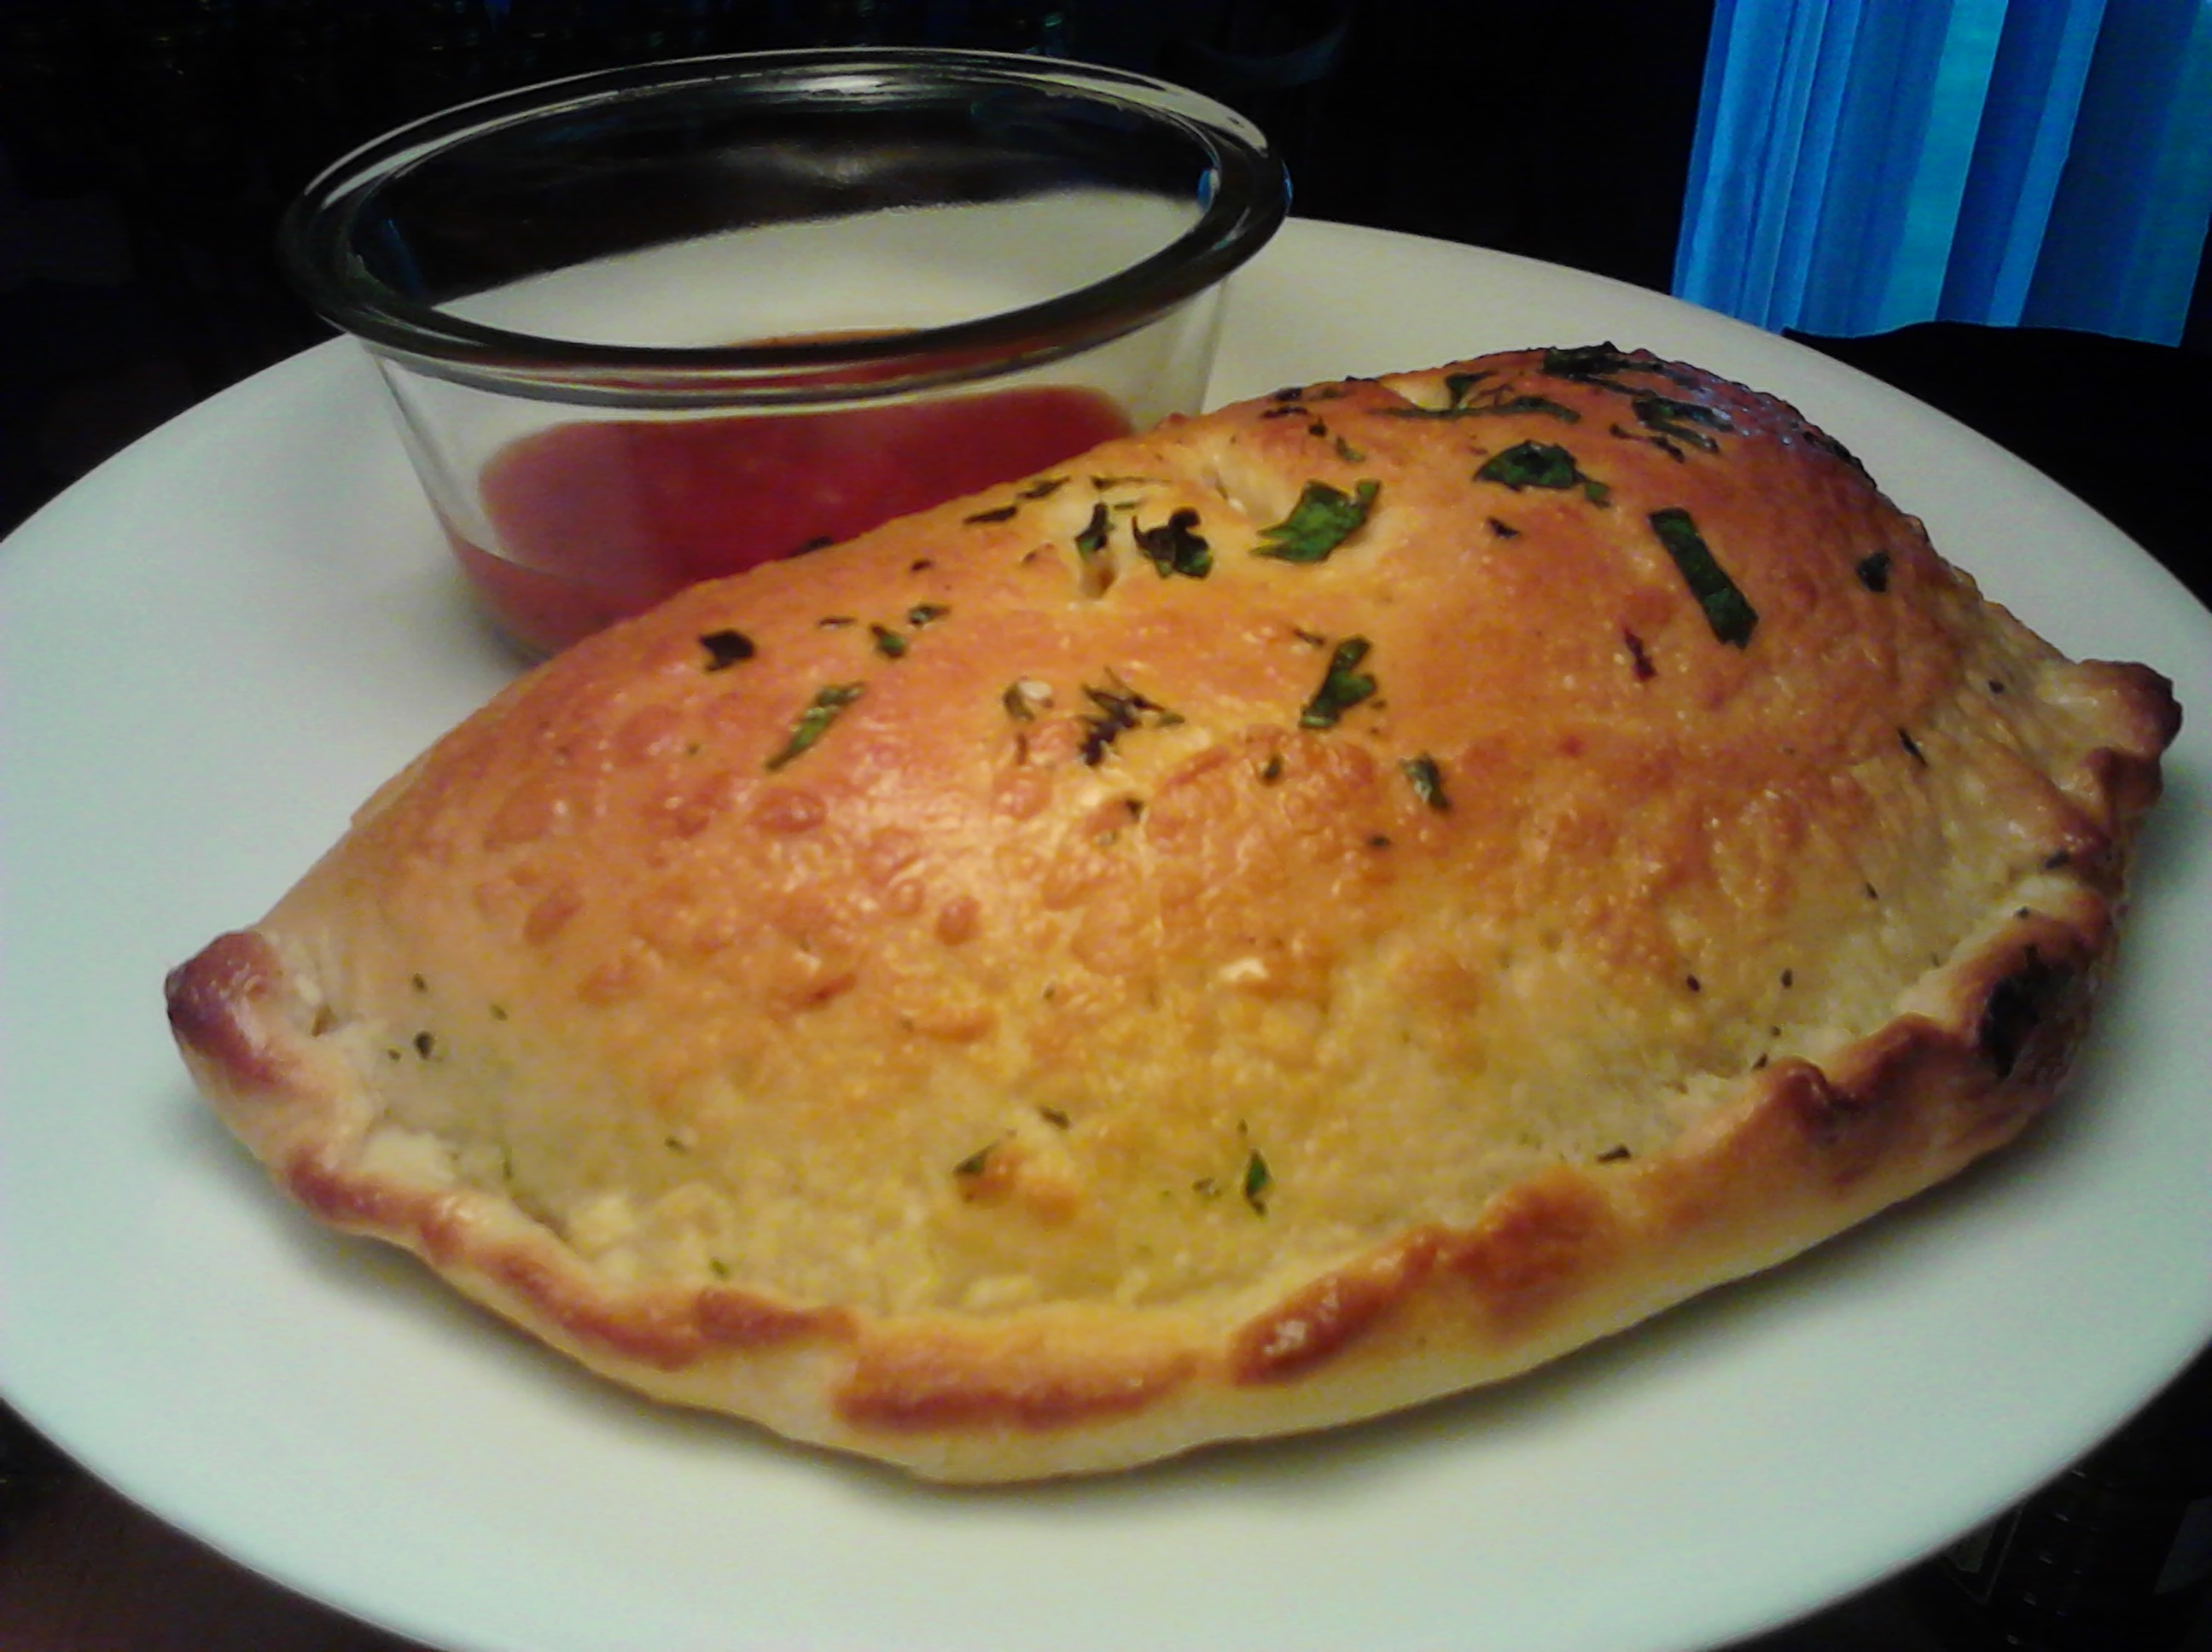 Calzones- Saucey, Meaty, Golden Brown and Cheesy